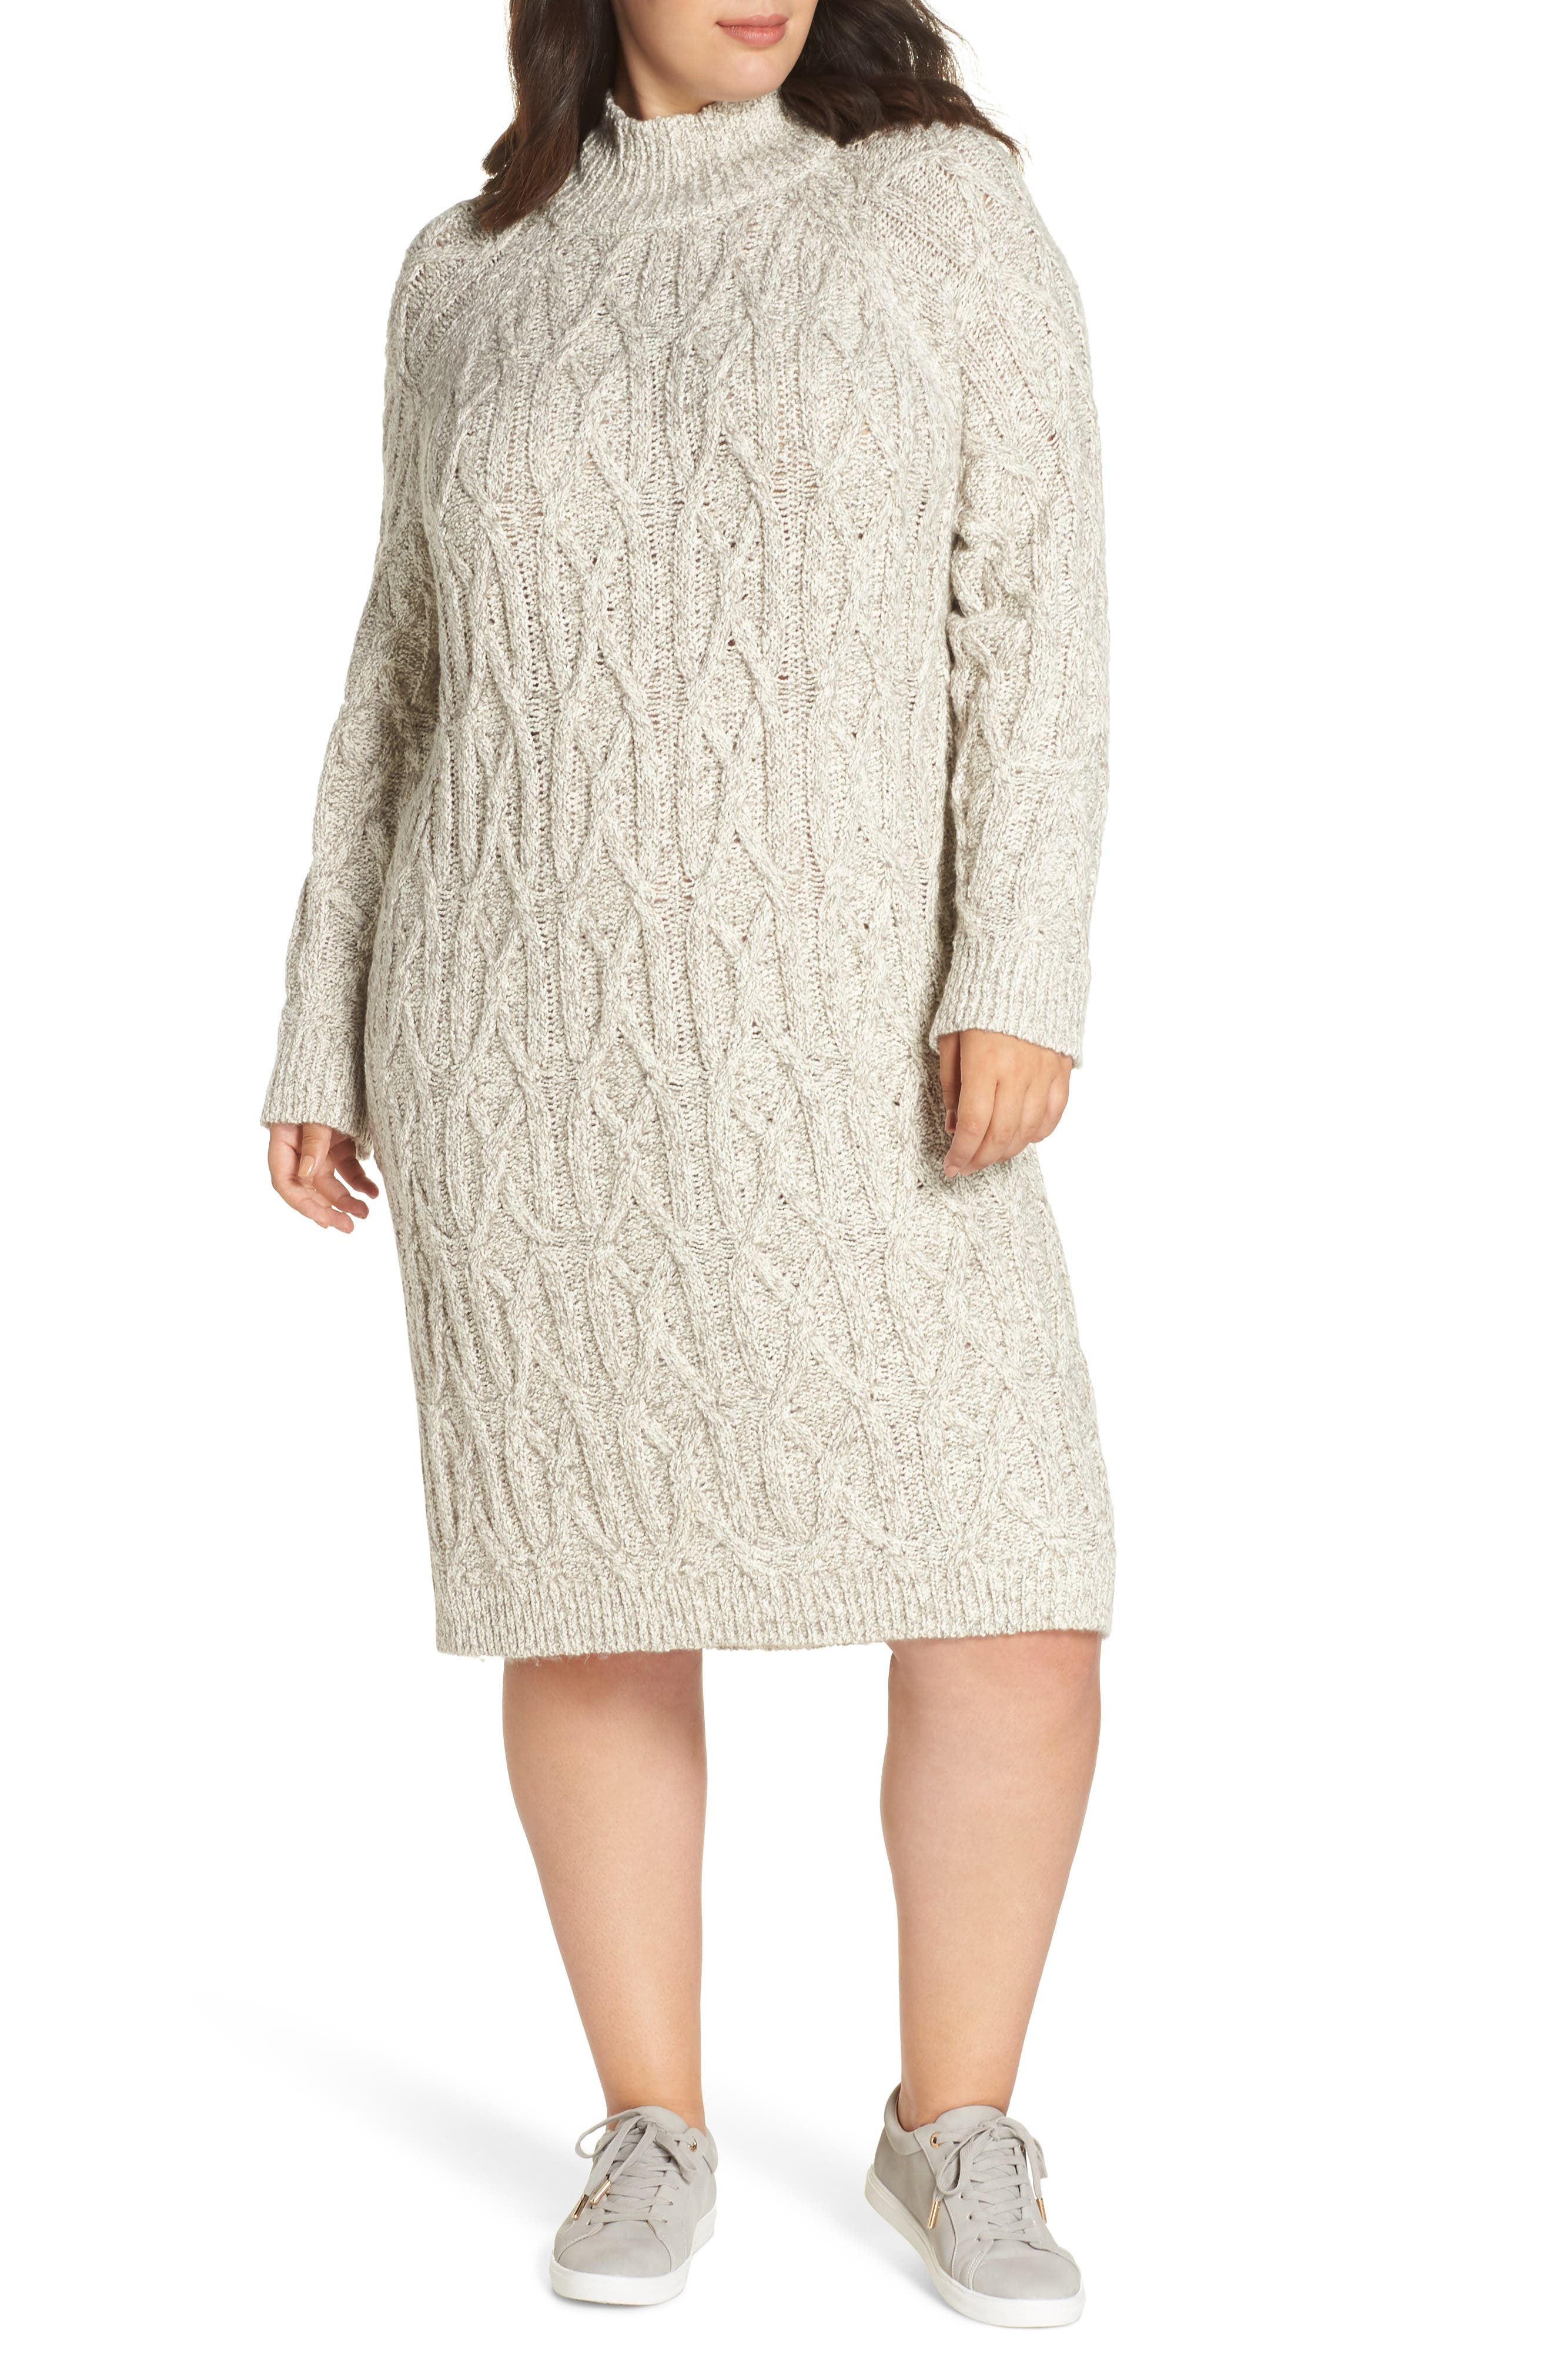 Cable Knit Sweater Dress,                             Main thumbnail 1, color,                             GREY PEARL MARL